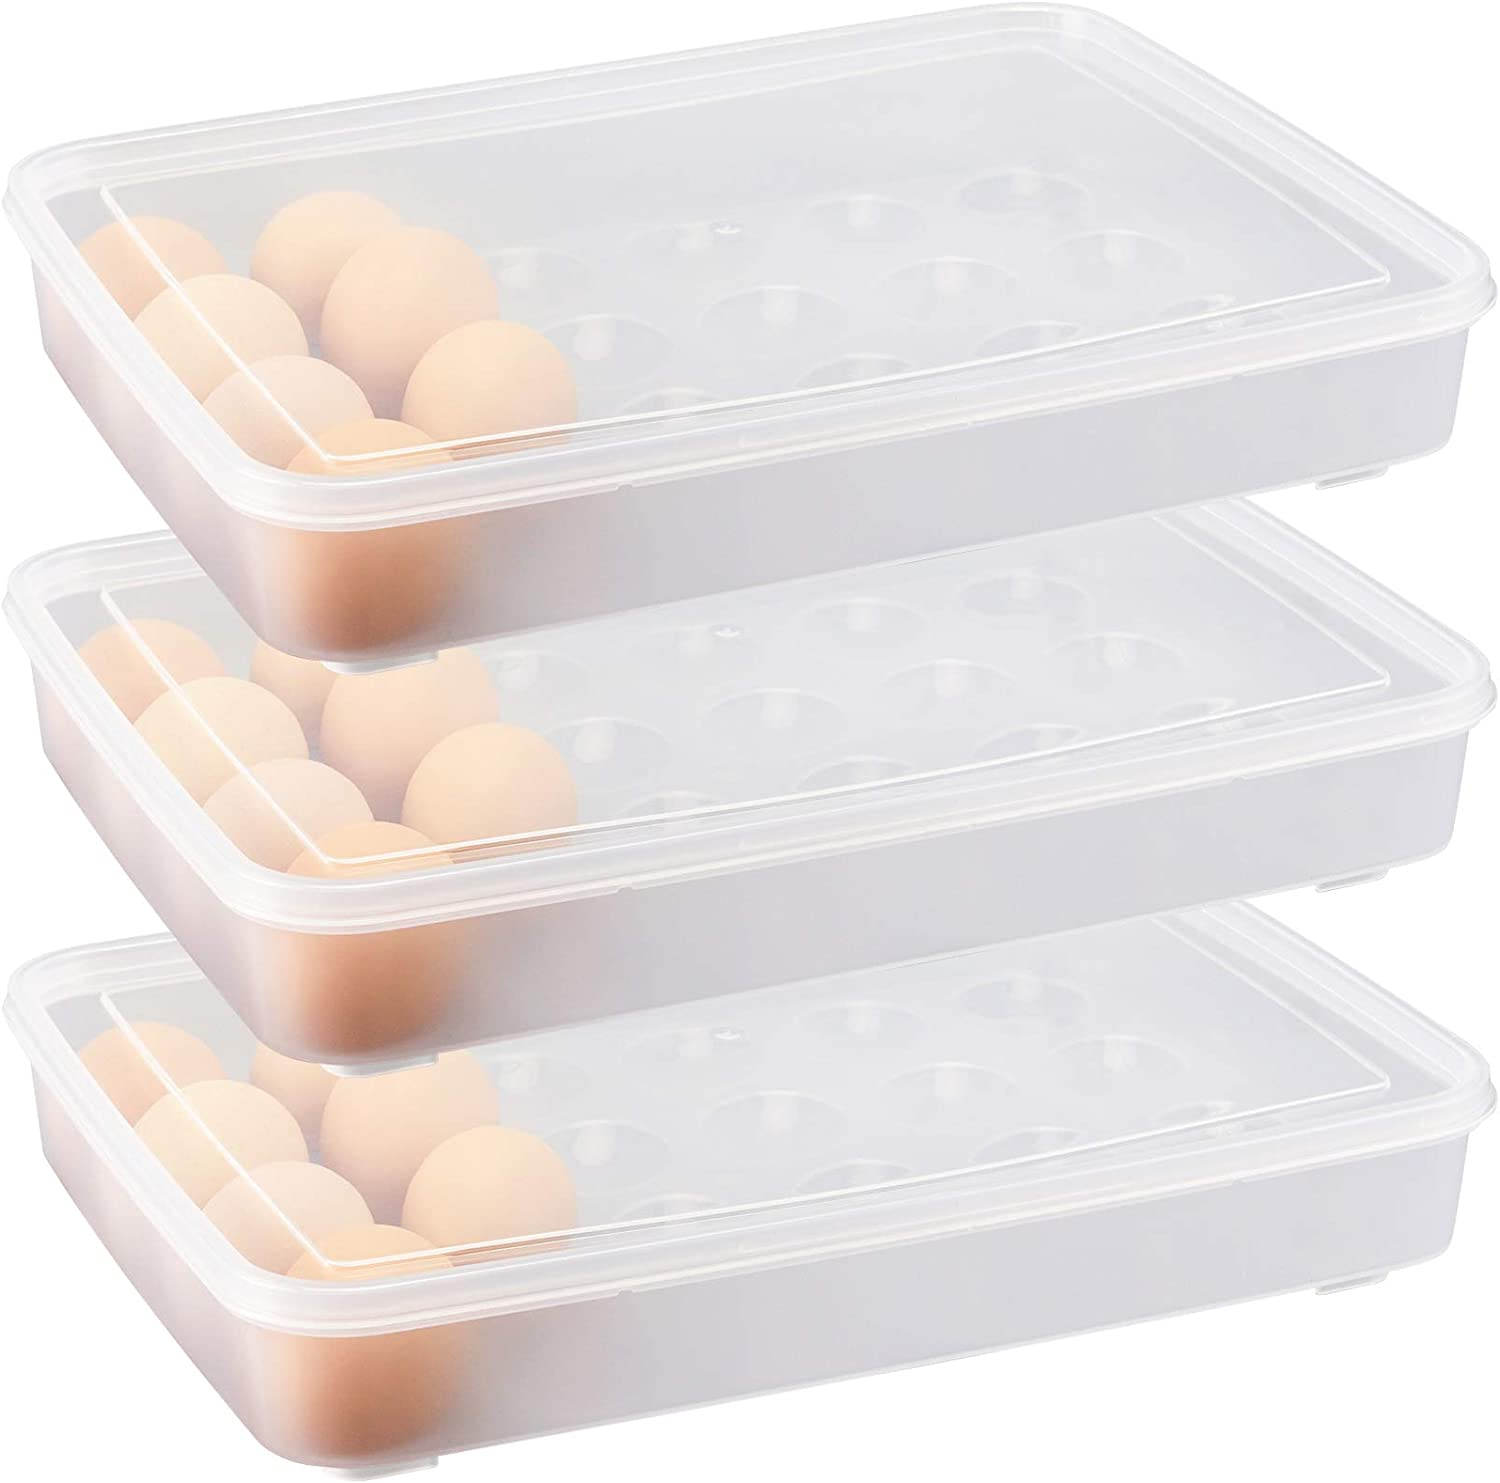 HOZEON 3 PCS Plastic Egg Holder for Refrigerator with Lid, 12.4 x 9.25 x 1.8 Inches Clear Stackable Egg Tray for Fridge, Egg Storage Container for Fruit, Refrigerator, Food, Camping, Picnic